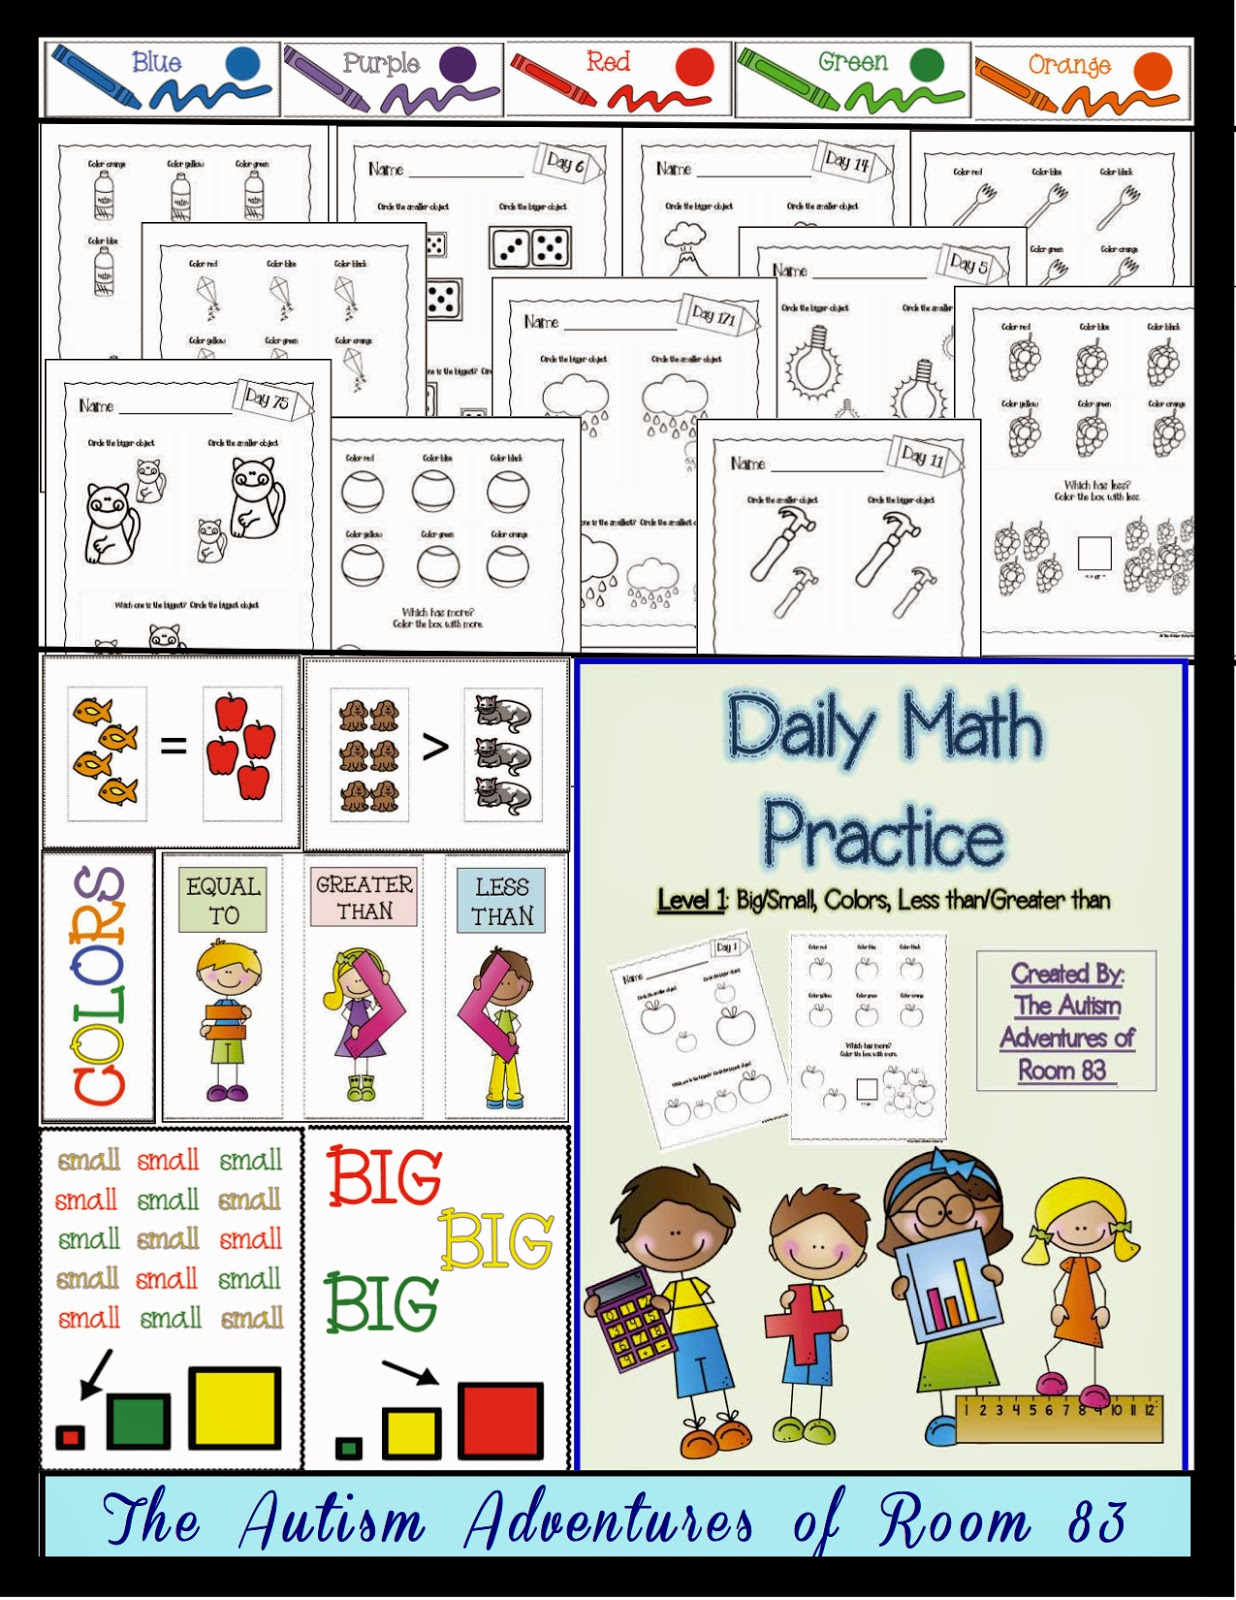 math worksheet : adapting math worksheets!  the autism adventures of room 83 : Math Worksheets For Special Education Students